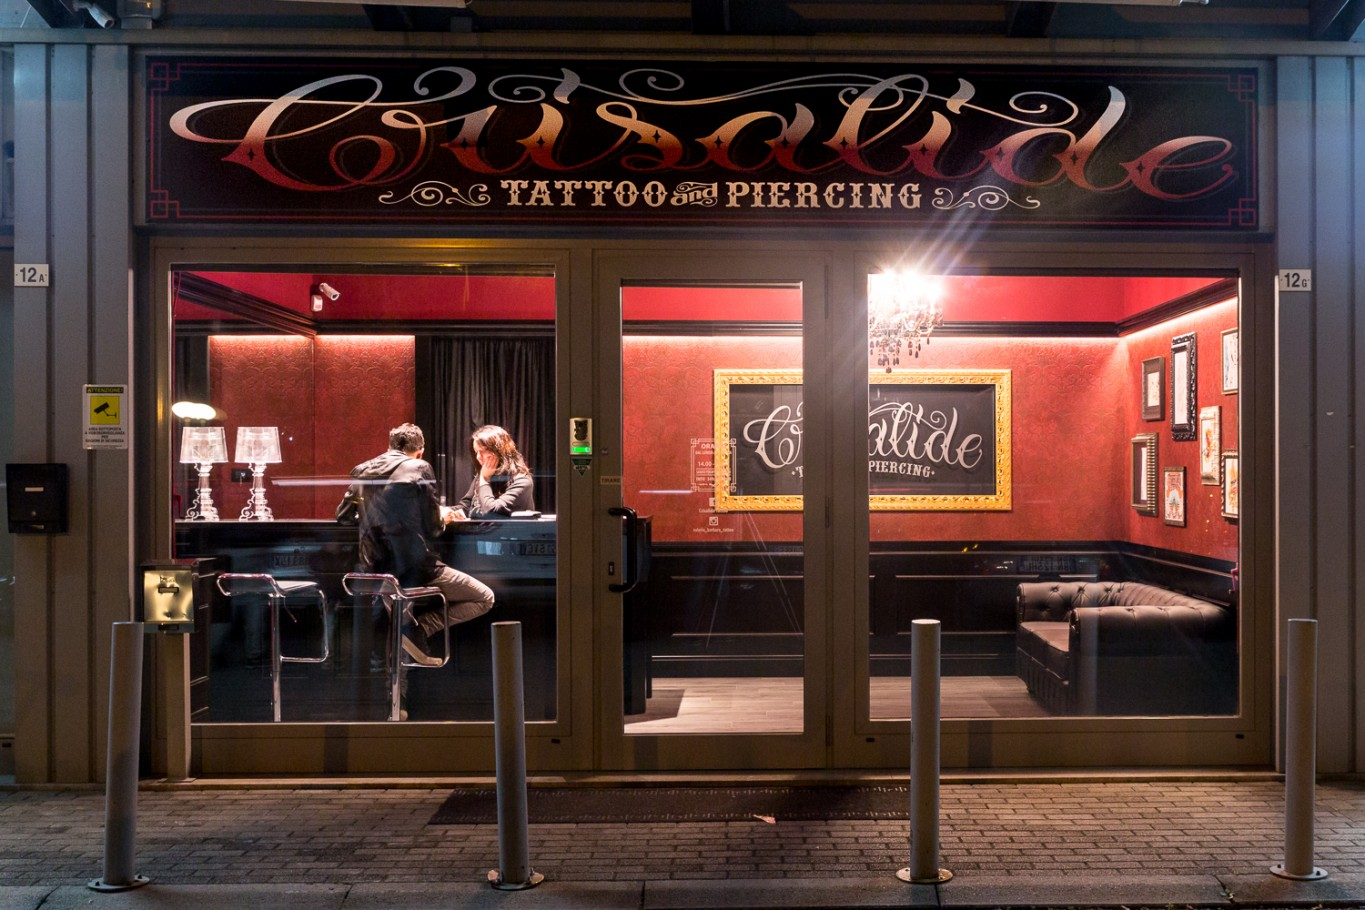 Crisalide Tattoo, omaggio a Edward Hopper